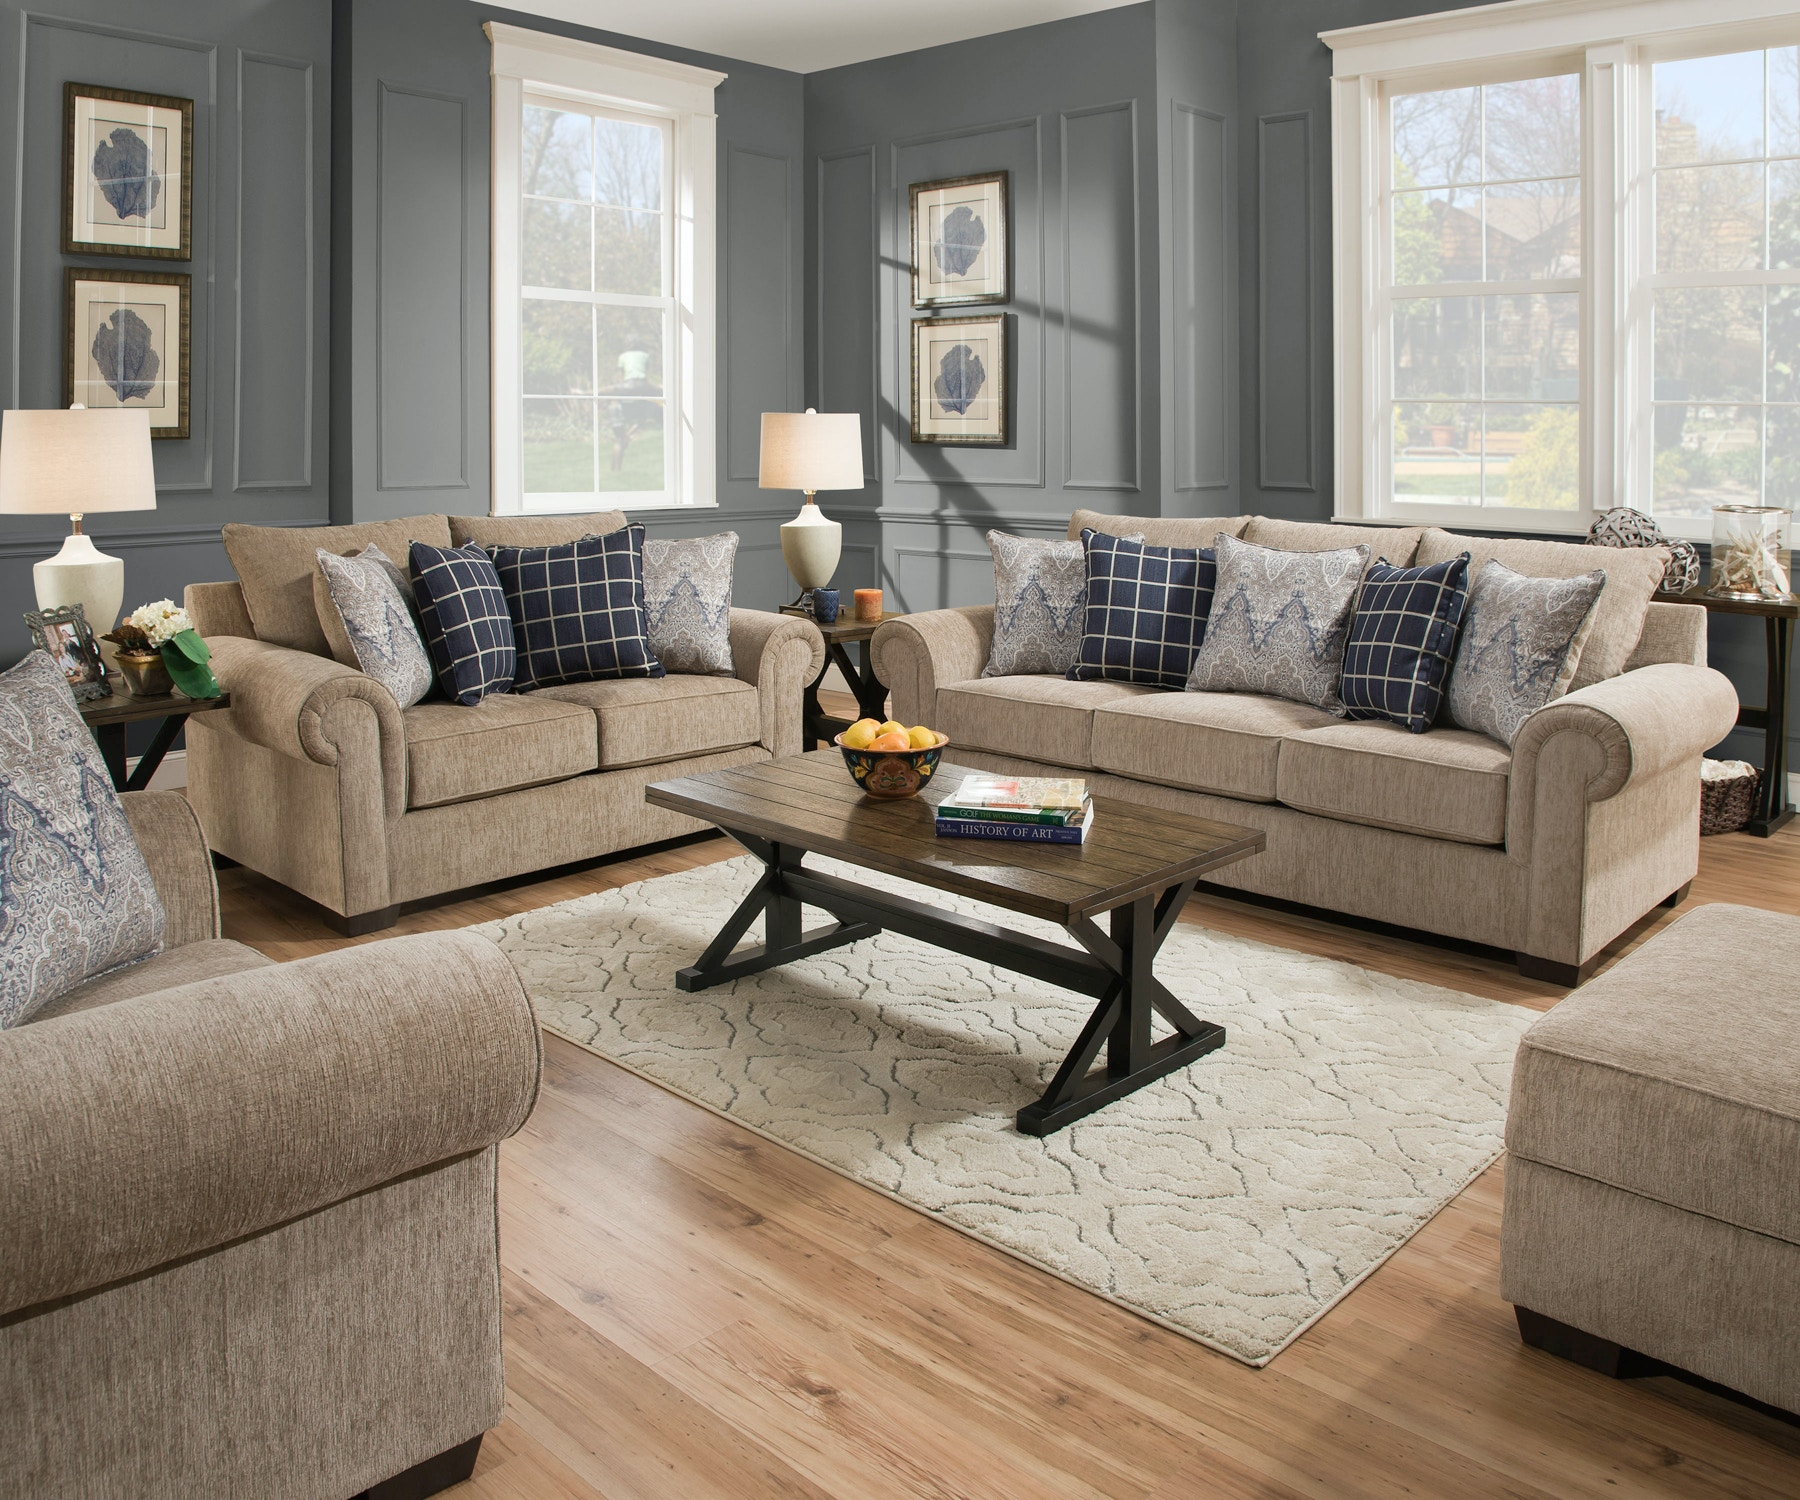 Simmons upholstery sofa astoria grand simmons upholstery for Simmons living room furniture